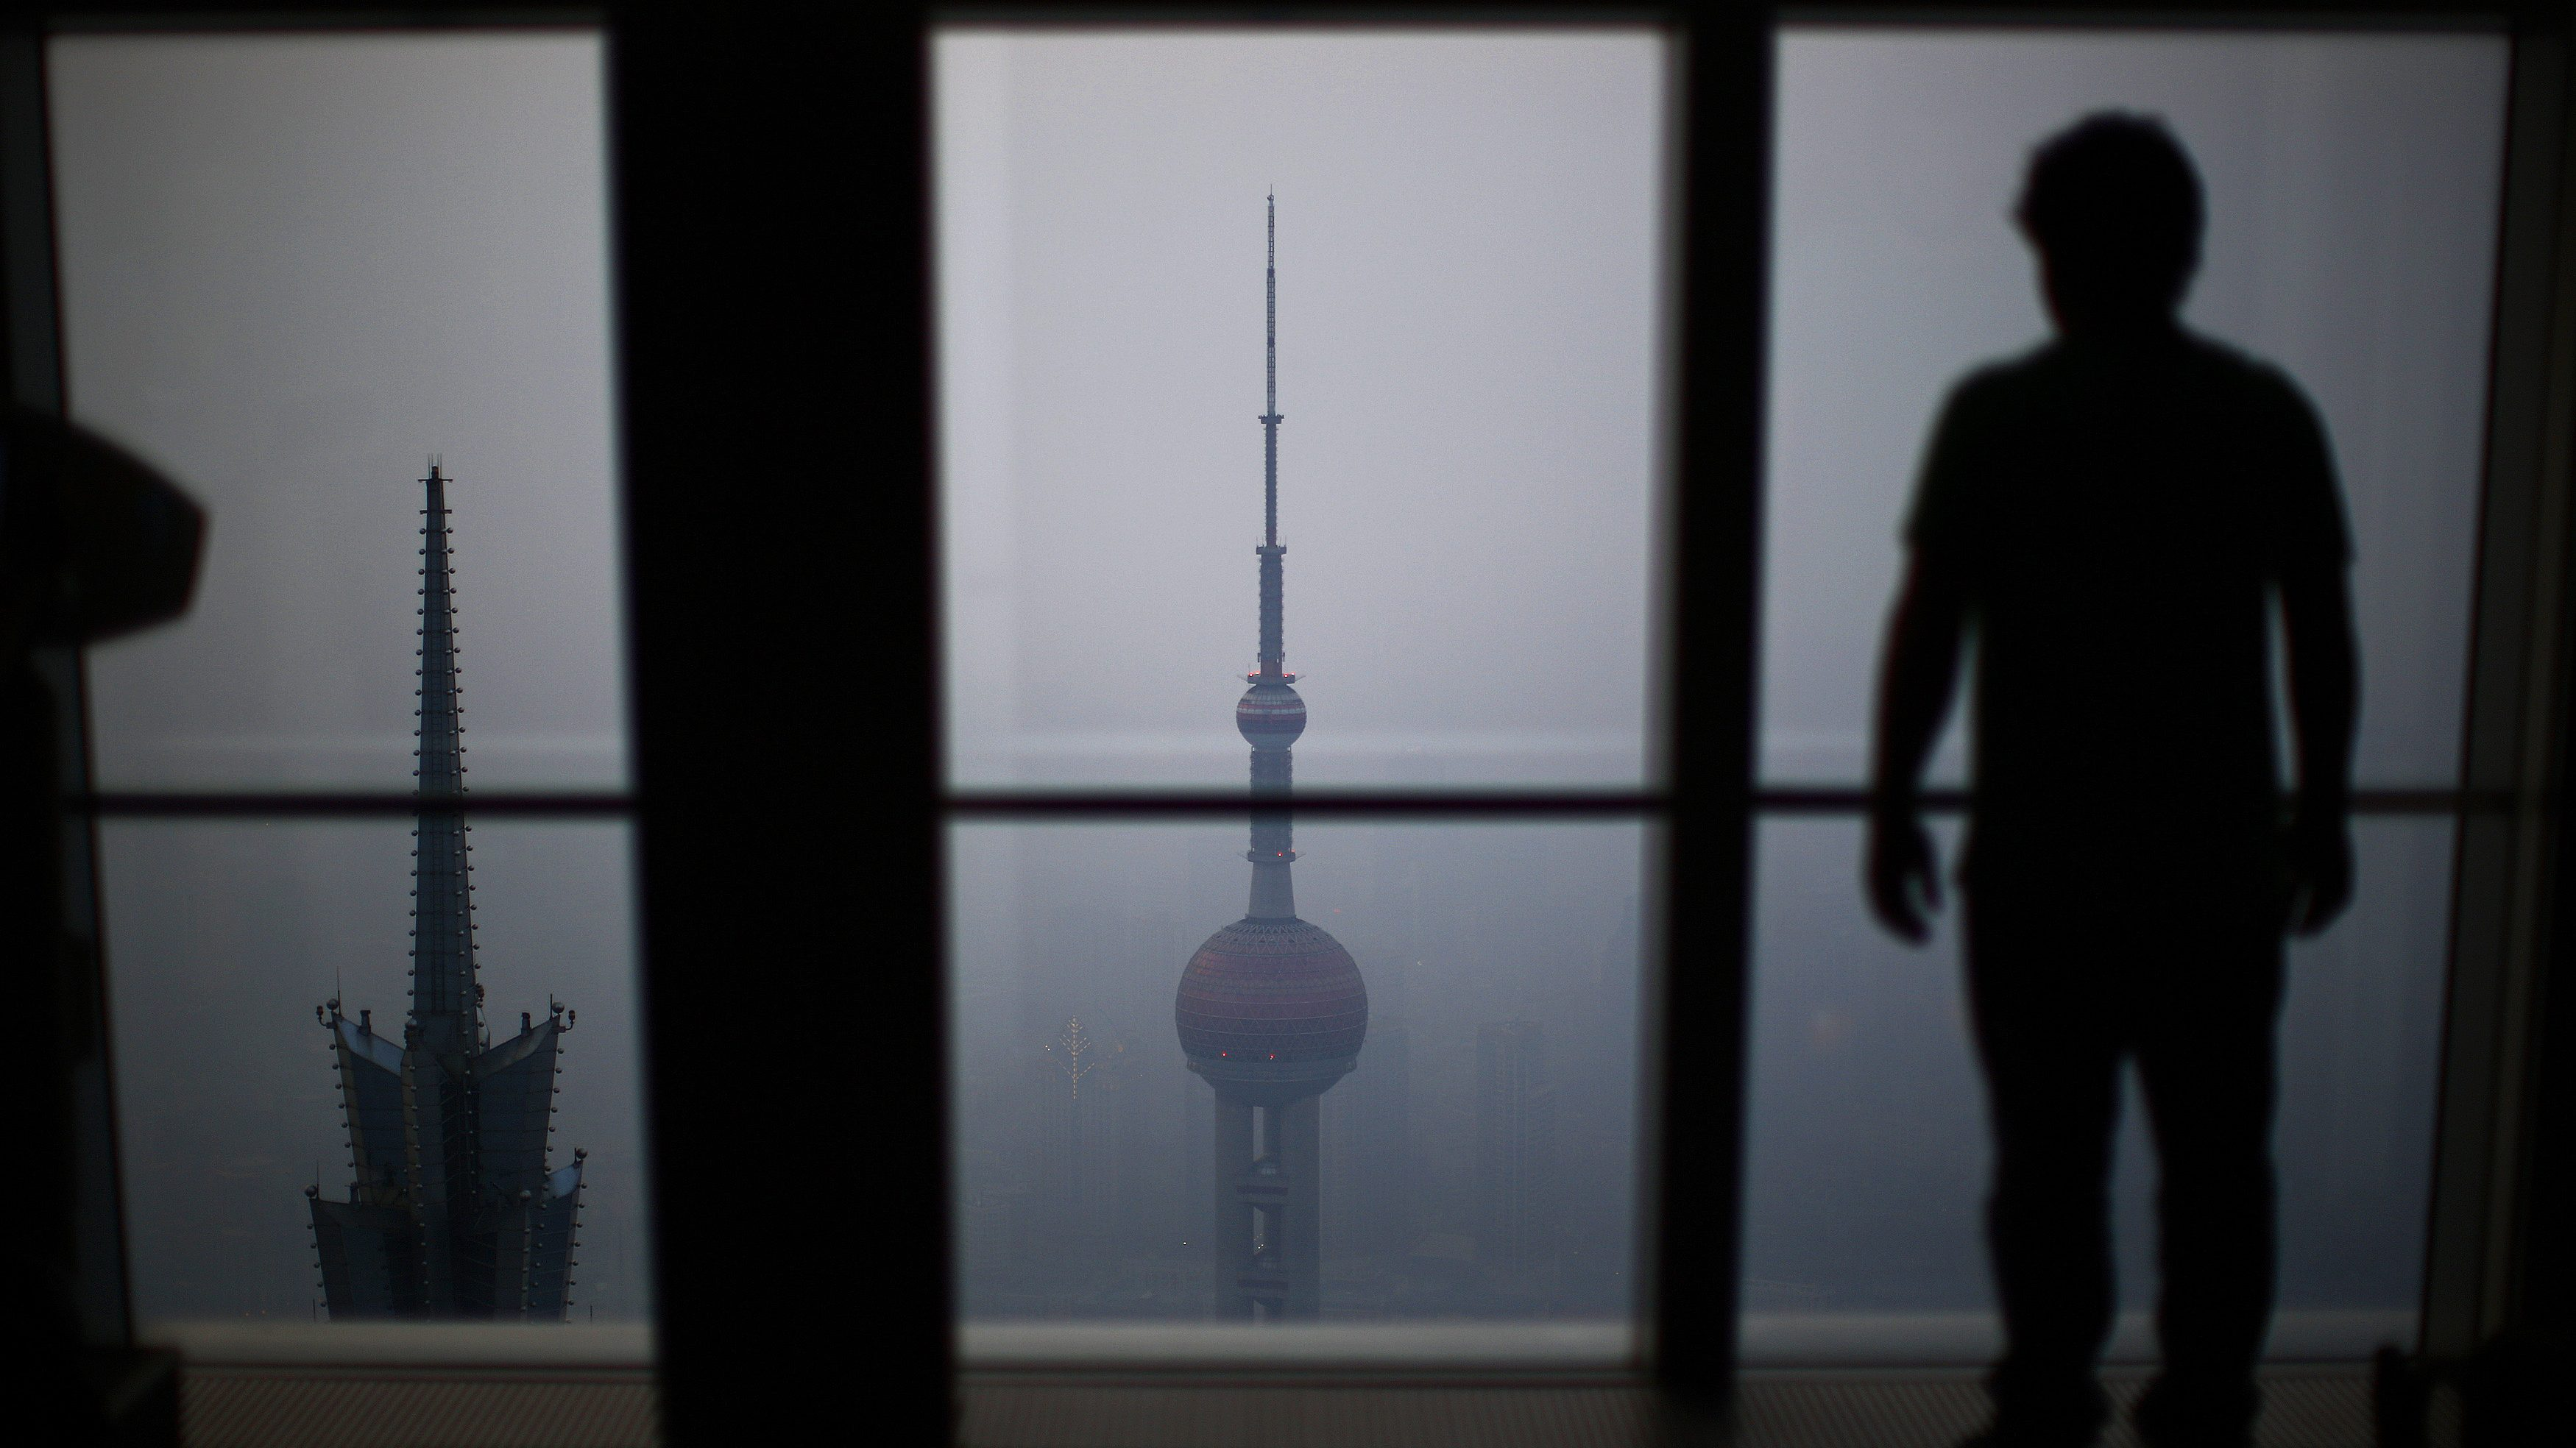 A man looks at the Oriental Pearl TV Tower on a hazy day at Pudong financial district in Shanghai March 18, 2014. China pledged on Sunday that it will make sure that 60 percent of its cities meet national pollution standards by 2020, with pressure growing to make cities liveable as hundreds of millions of migrants are expected to relocate from the countryside.